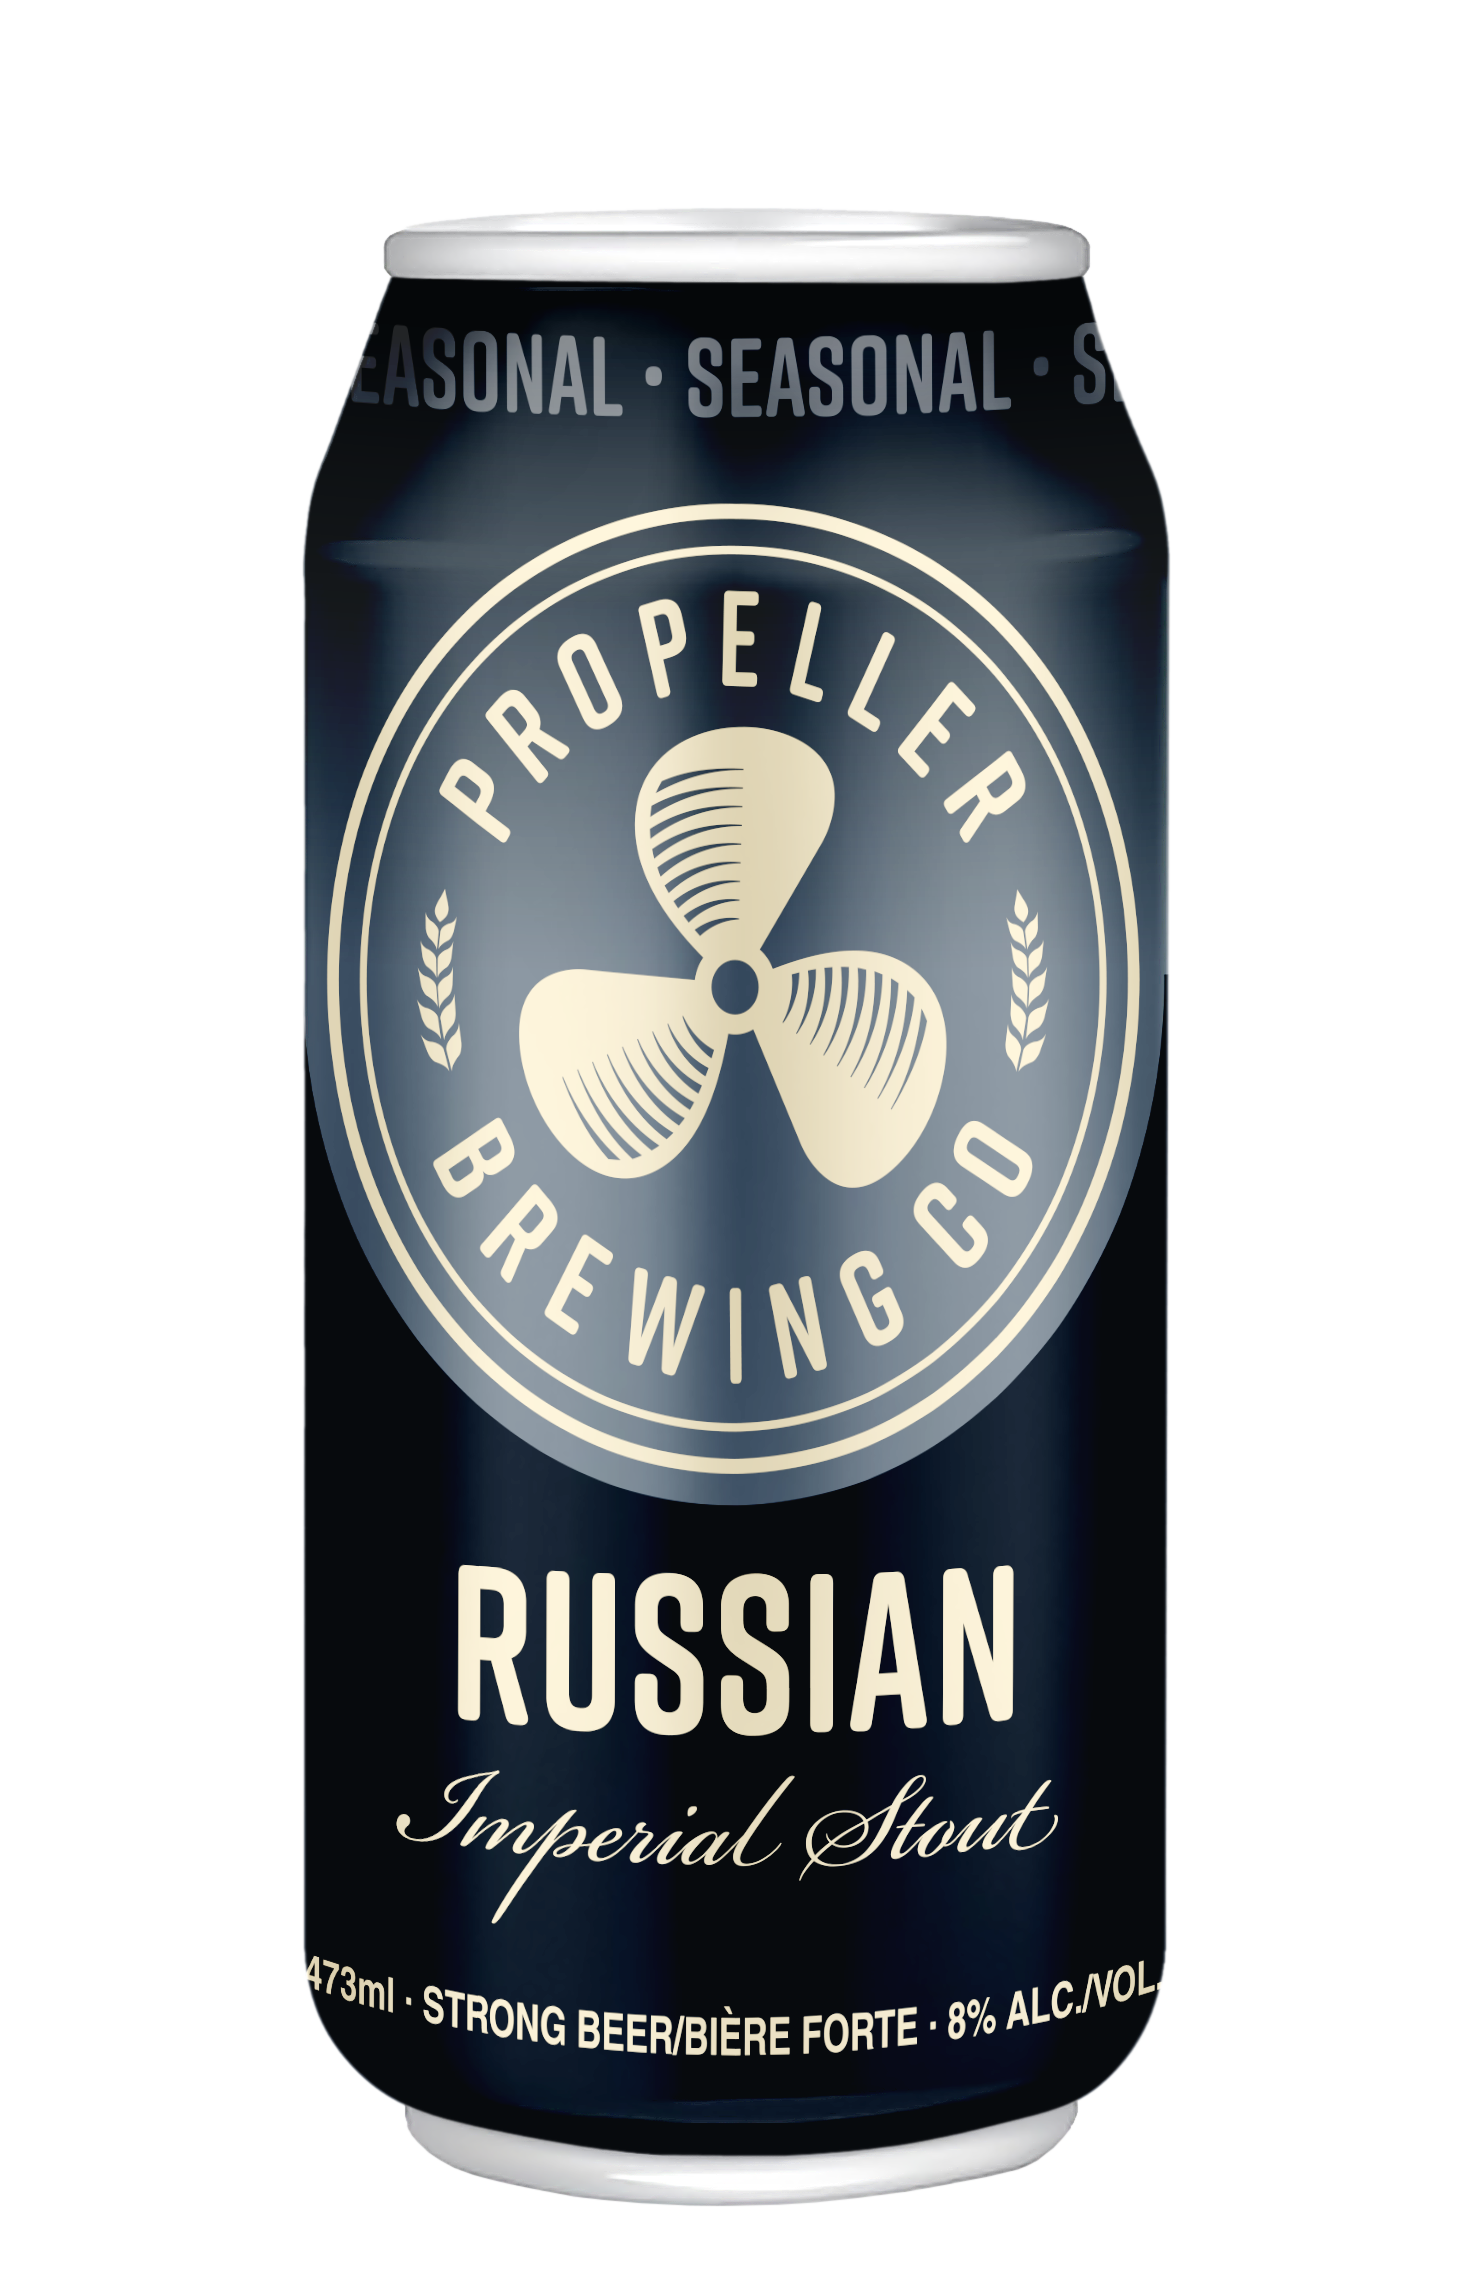 A product image for Propeller Russian Imperial Stout